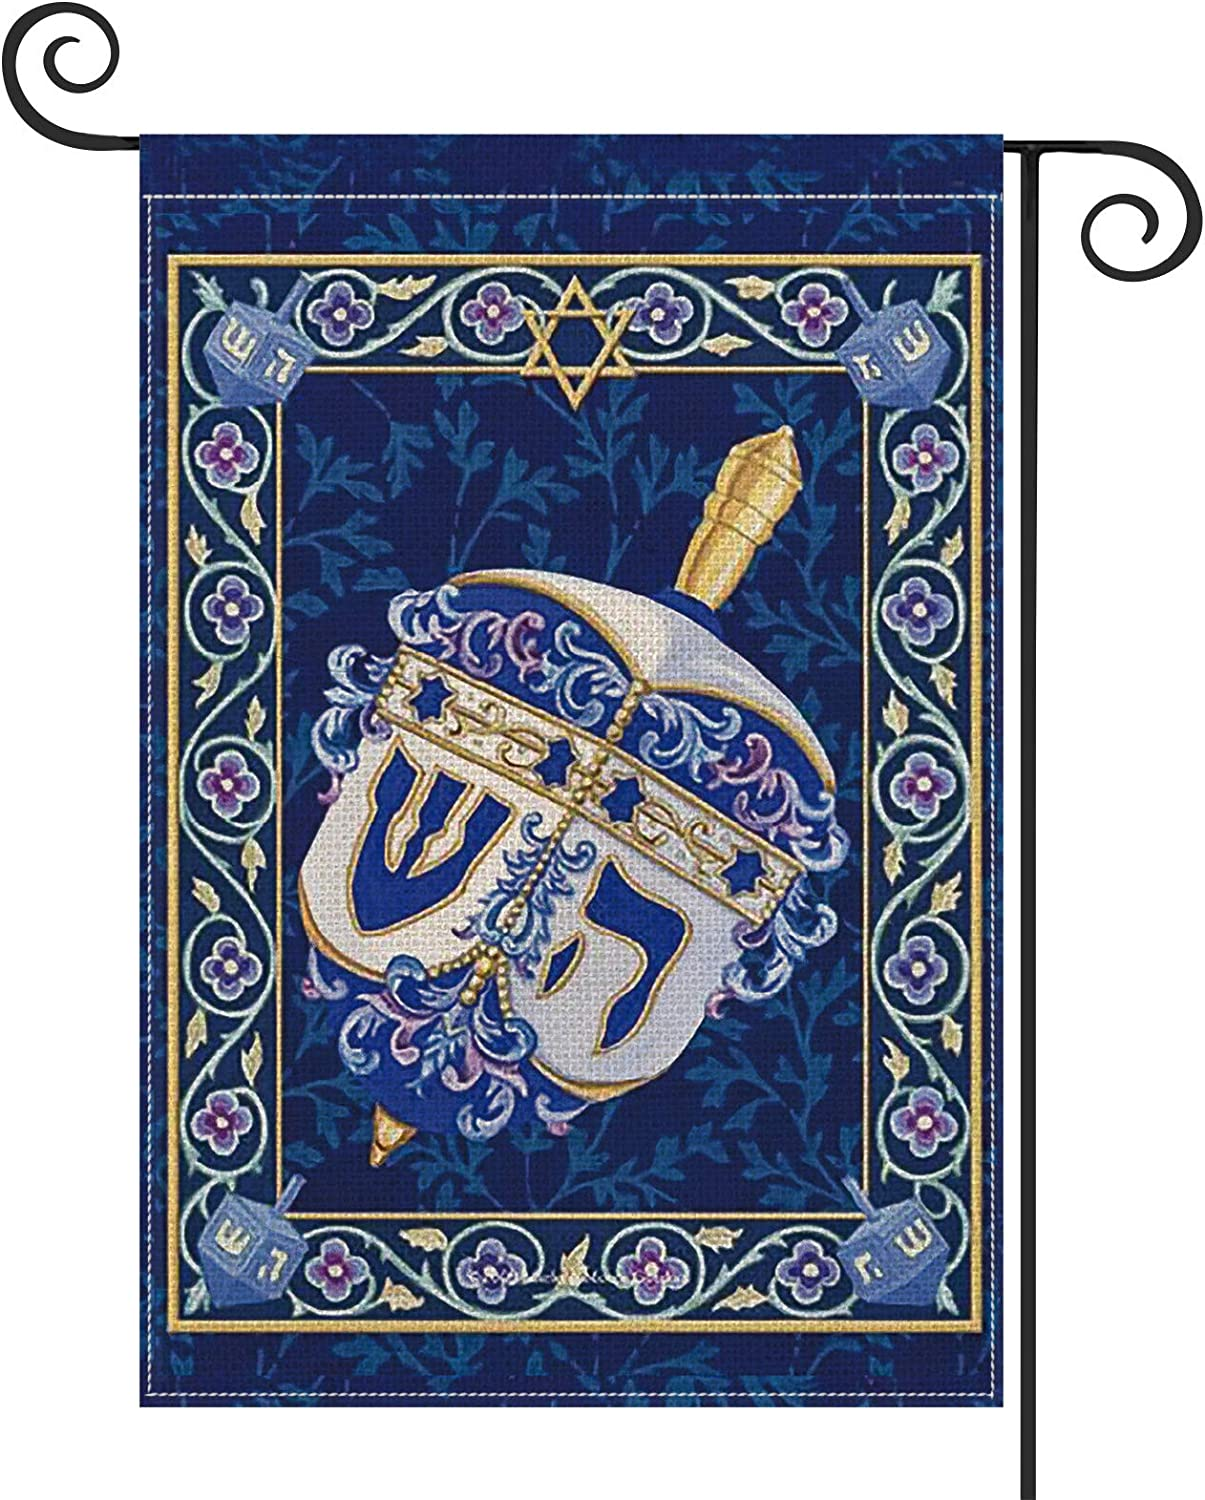 AVOIN Hanukkah Dreidel Star of David Garden Flag Vertical Double Sized, Jewish Sivivon Holiday Yard Outdoor Decoration 12.5 x 18 Inch